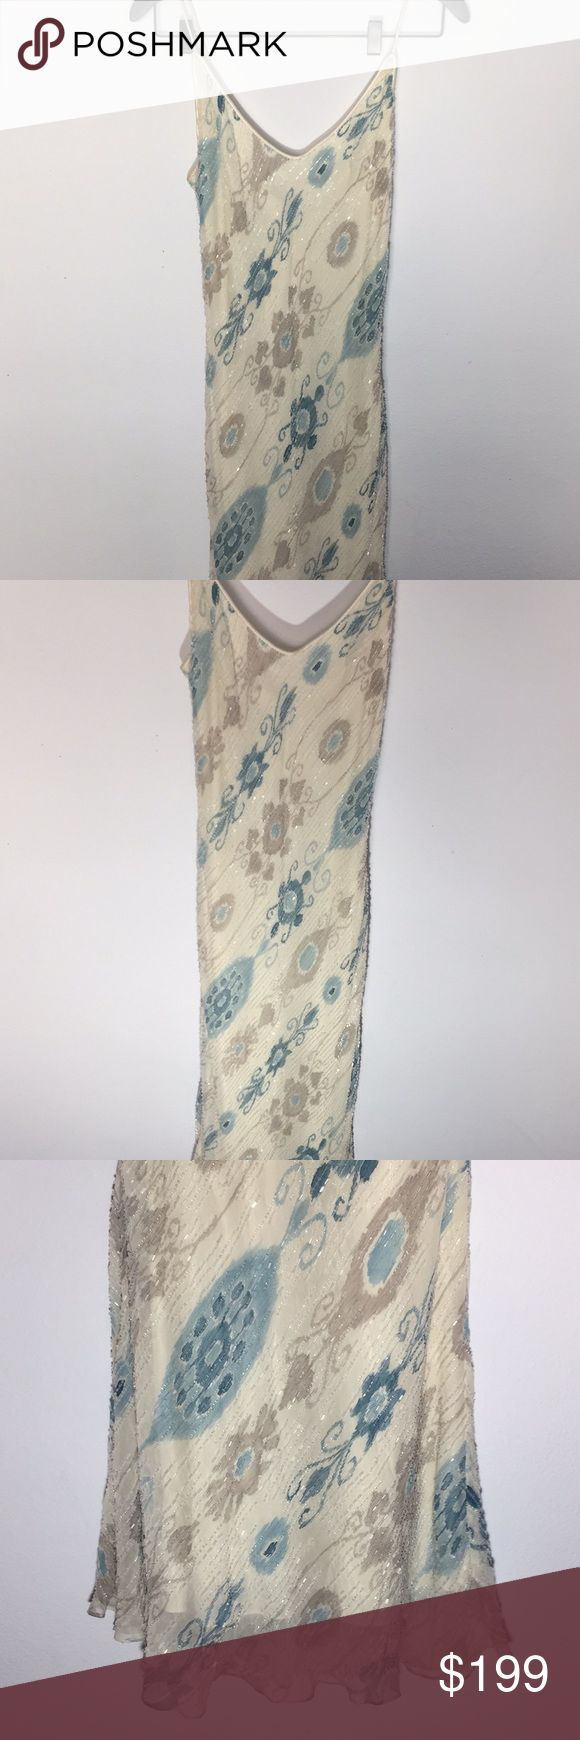 Kay Unger Evening Sequin Gown White Blue Flower This dress is gorgeous  Cream color base with blue and puter design. Sequin, dress is heavy so hangs beautiful on the body  Label tag partially coming off  Comes with extra sequin Amazing condition Kay Unger Dresses Maxi